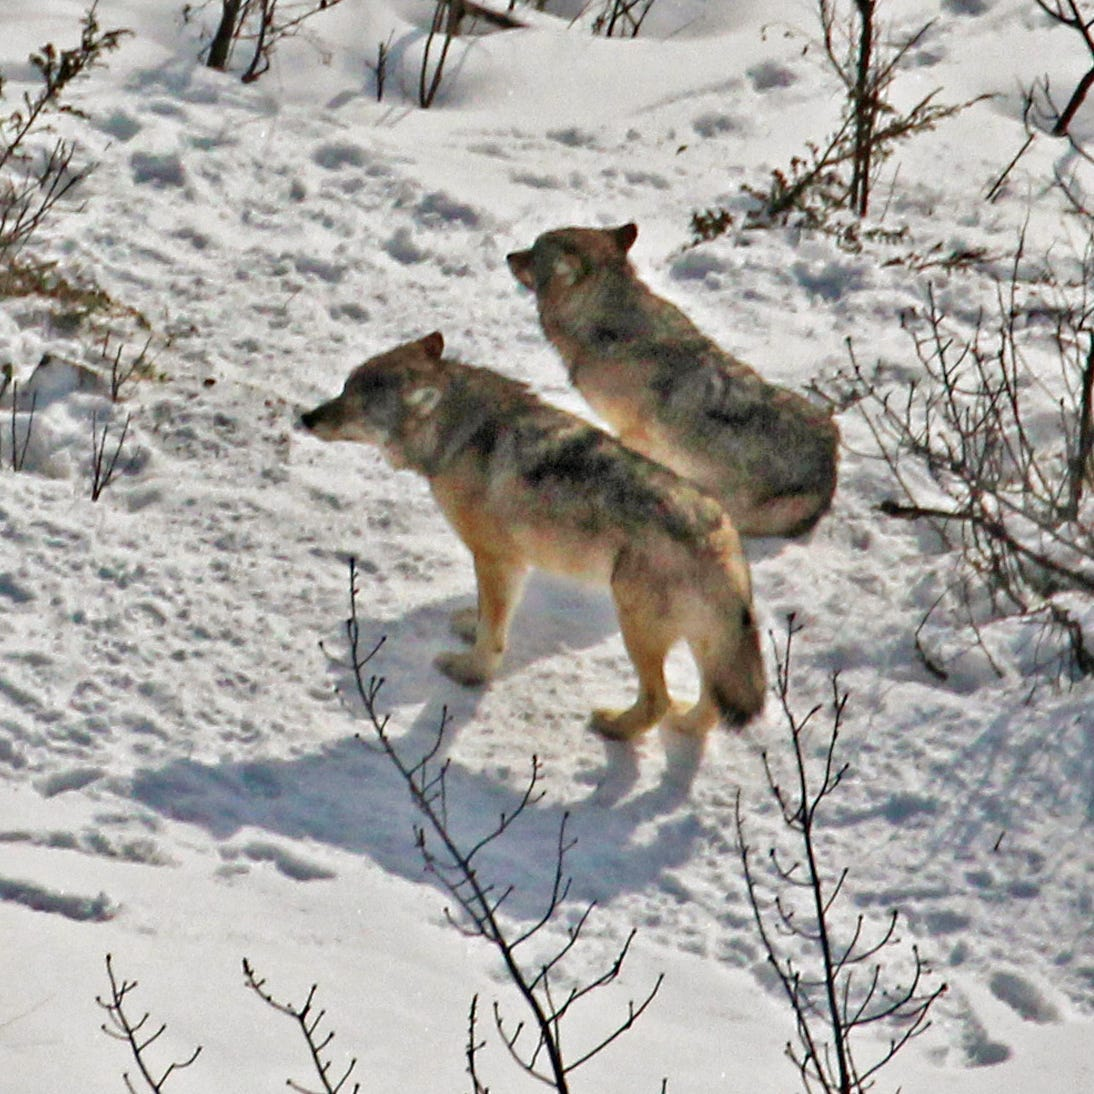 Starving wolves successfully relocated to Isle Royale National Park